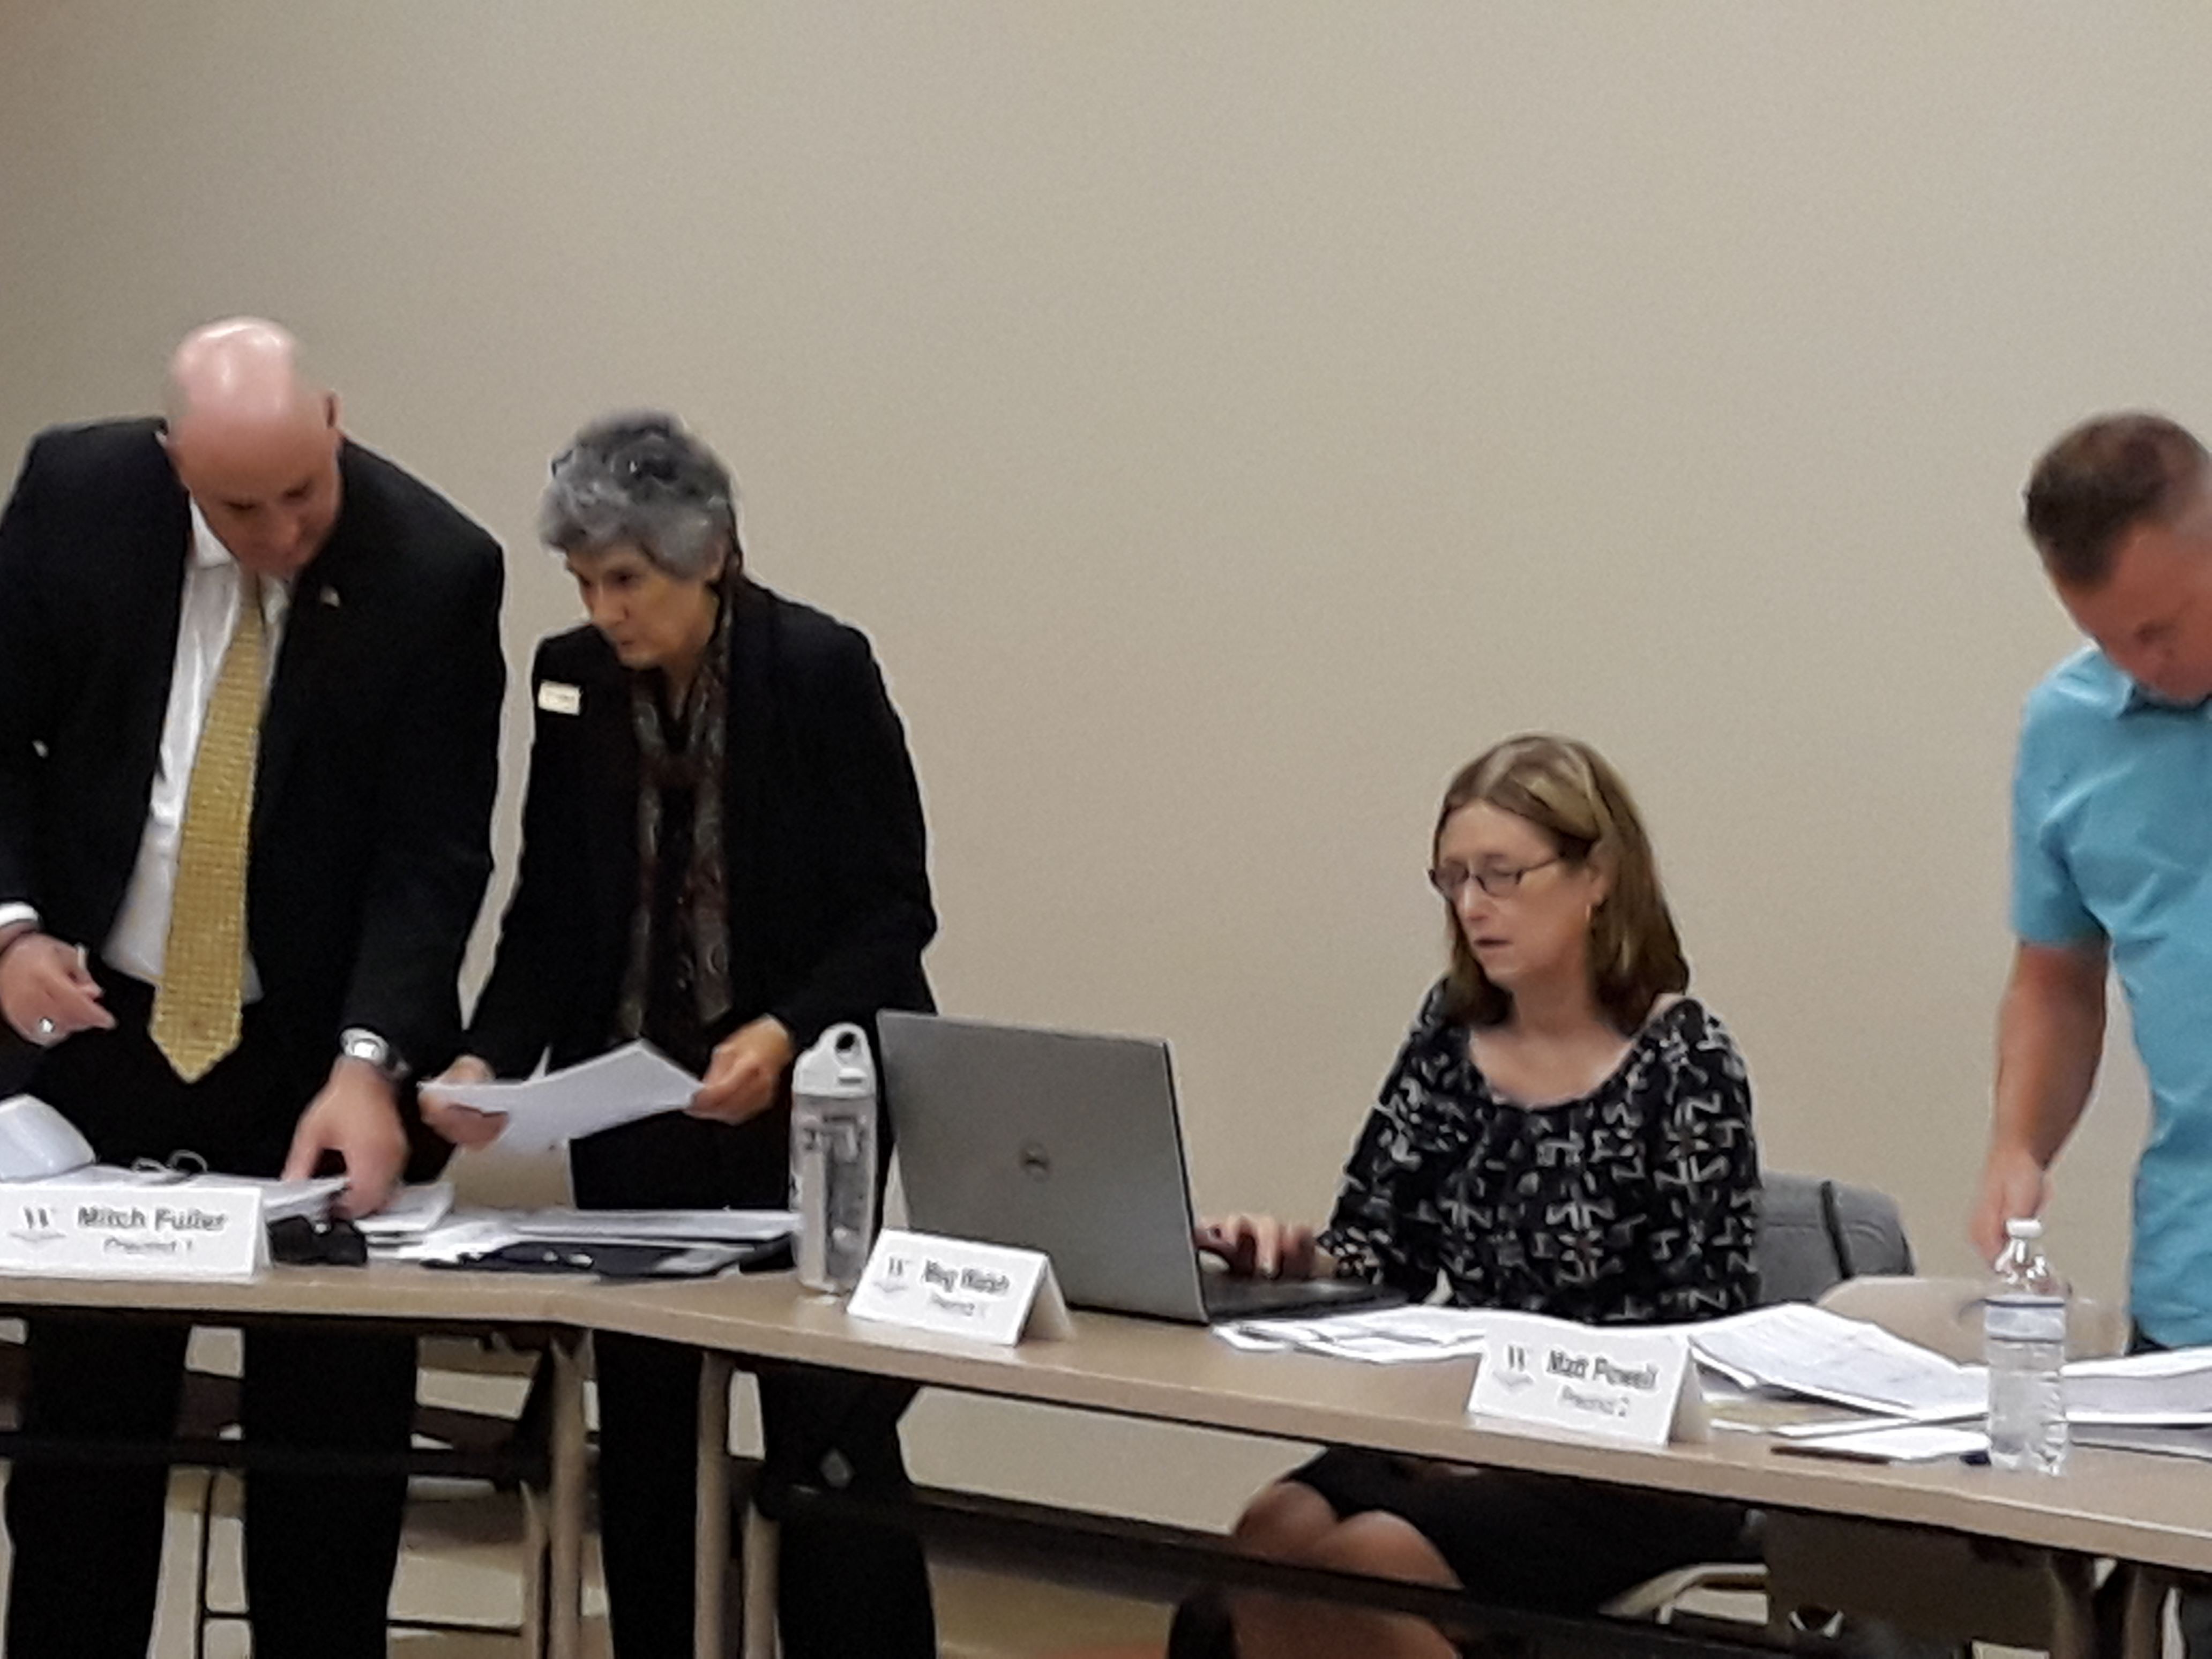 Commissioner Cook reviews documents on projects with Committee member Mitch Fuller, Pct. 1; seated is Meg Walsh, Pct. 1 and standing next to her is Joe Bob Ellison, Pct. 2 member.